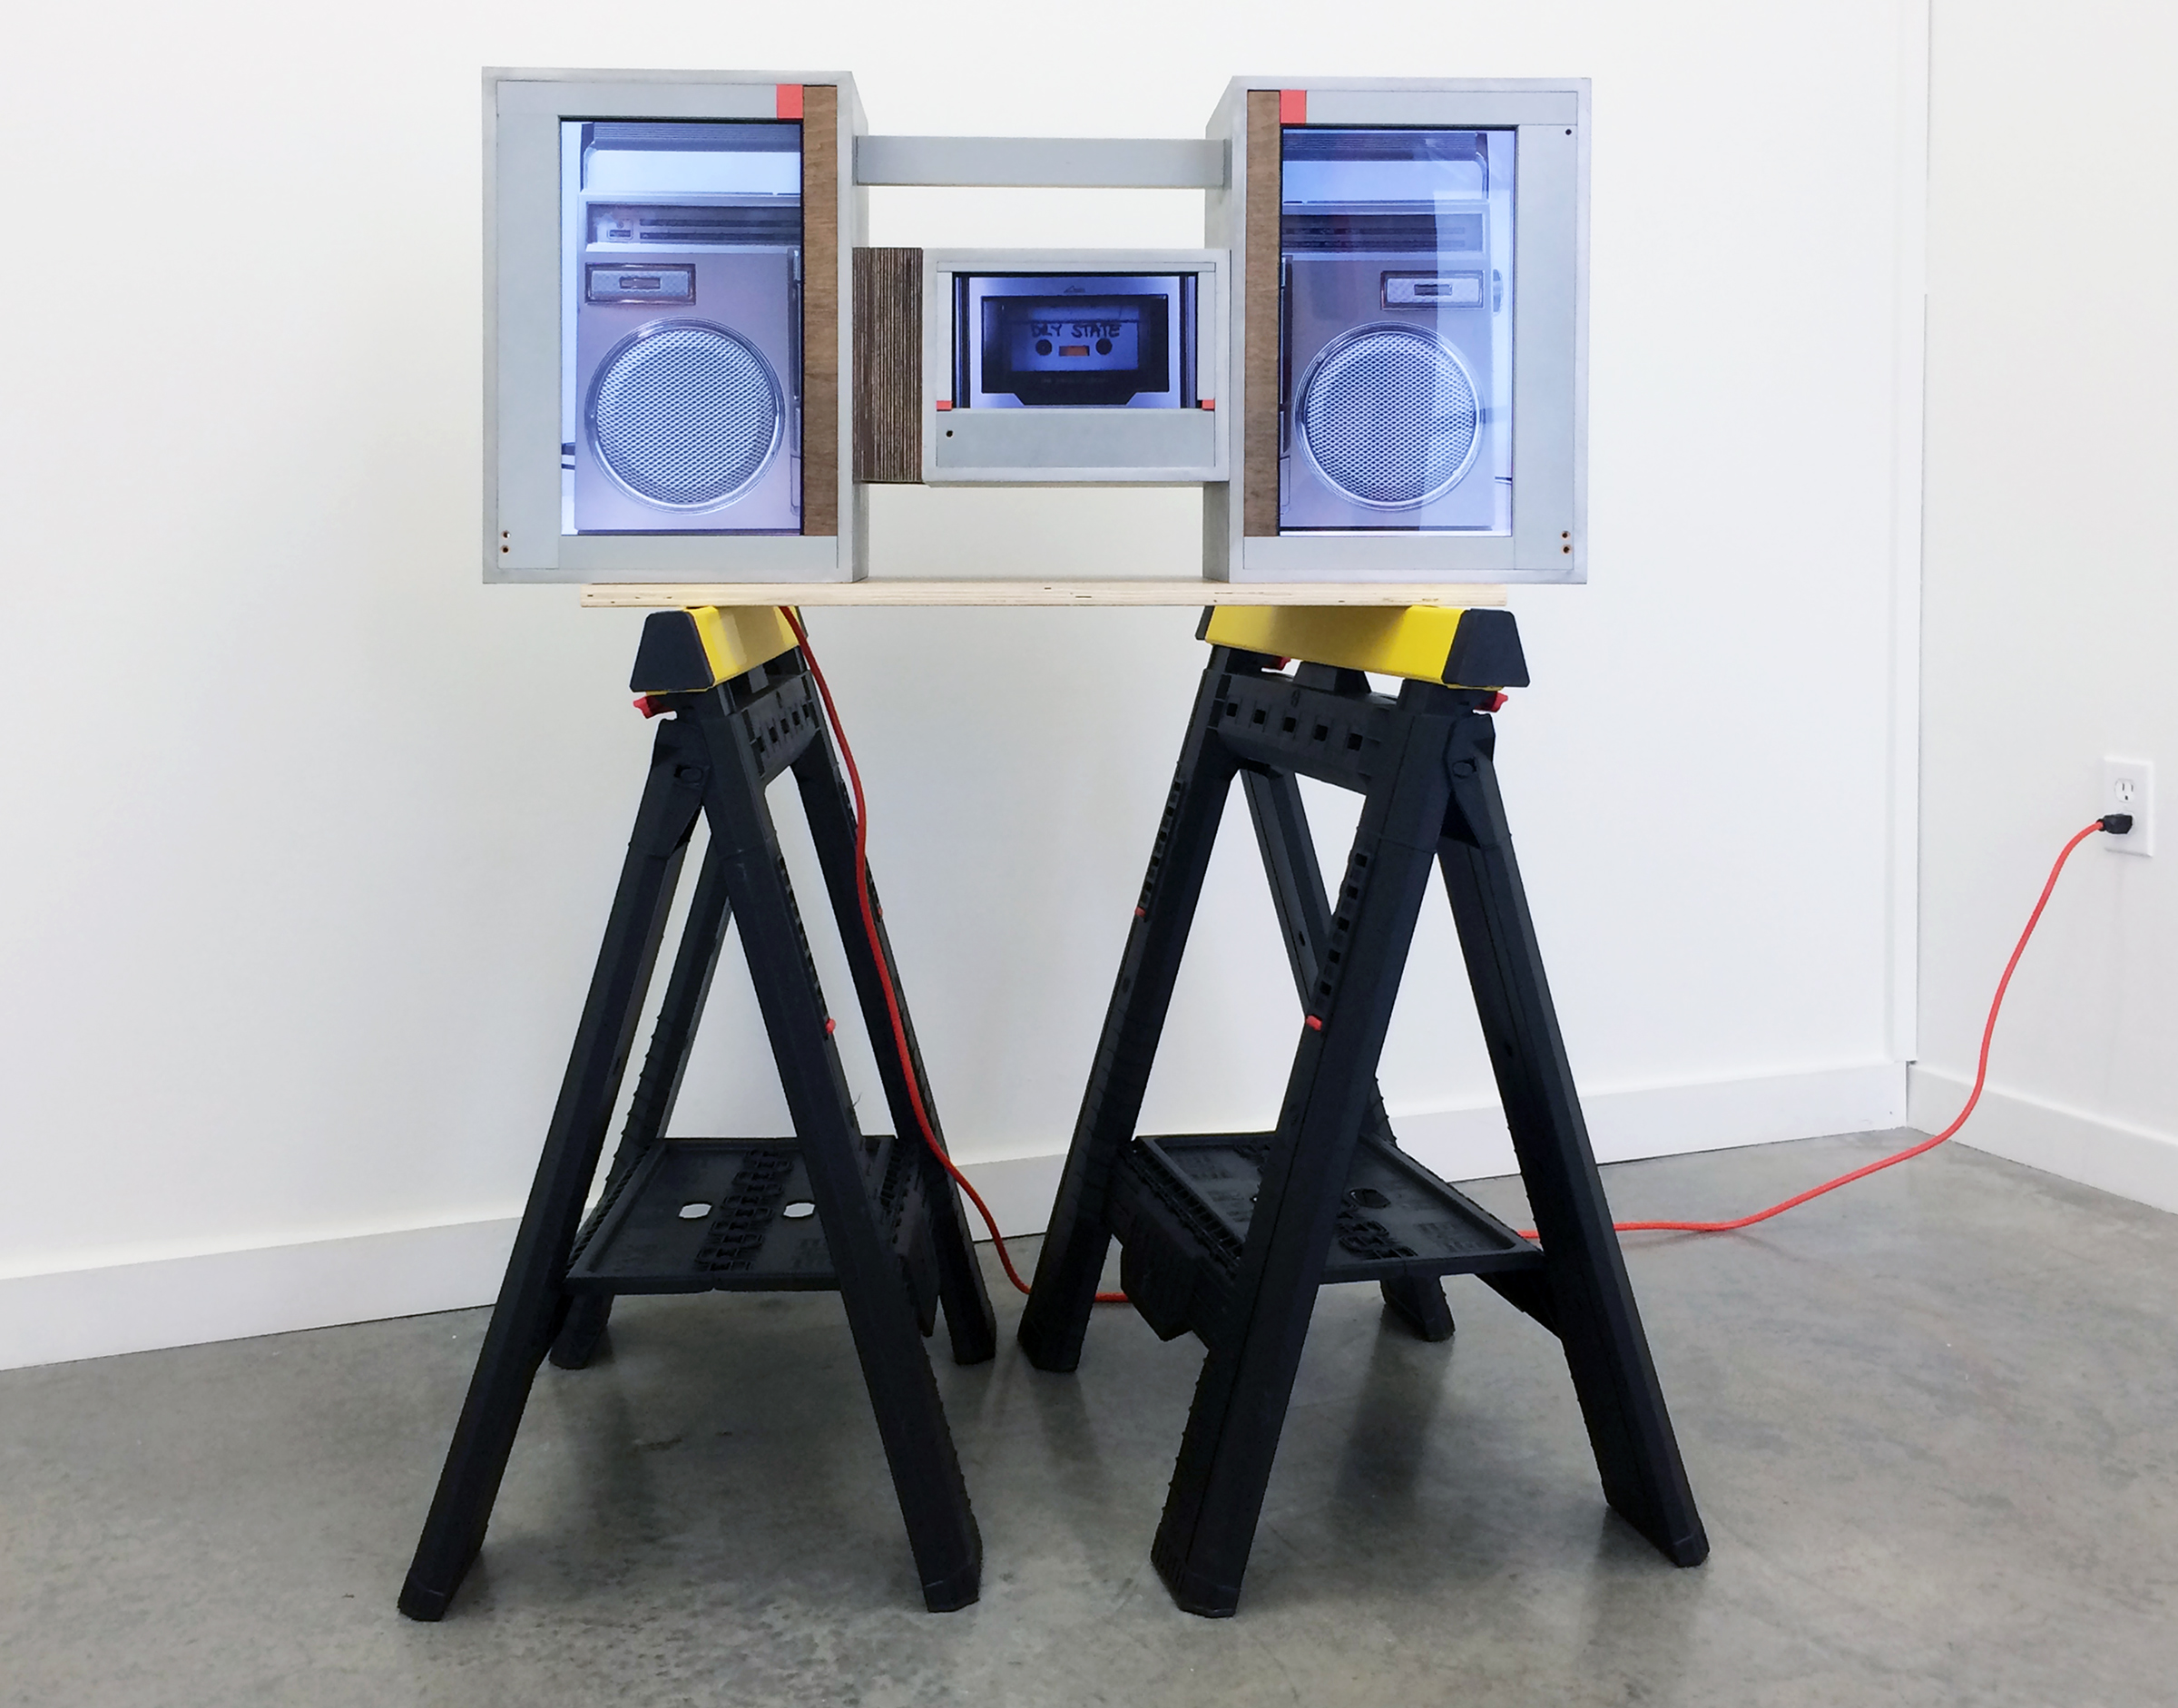 """JOSHUA PIEPER   Video Boom Box , 2015, LCD monitors, dvds, speakers, wood housing and saw horses, 46.75"""" x 35.75"""" x 10"""""""